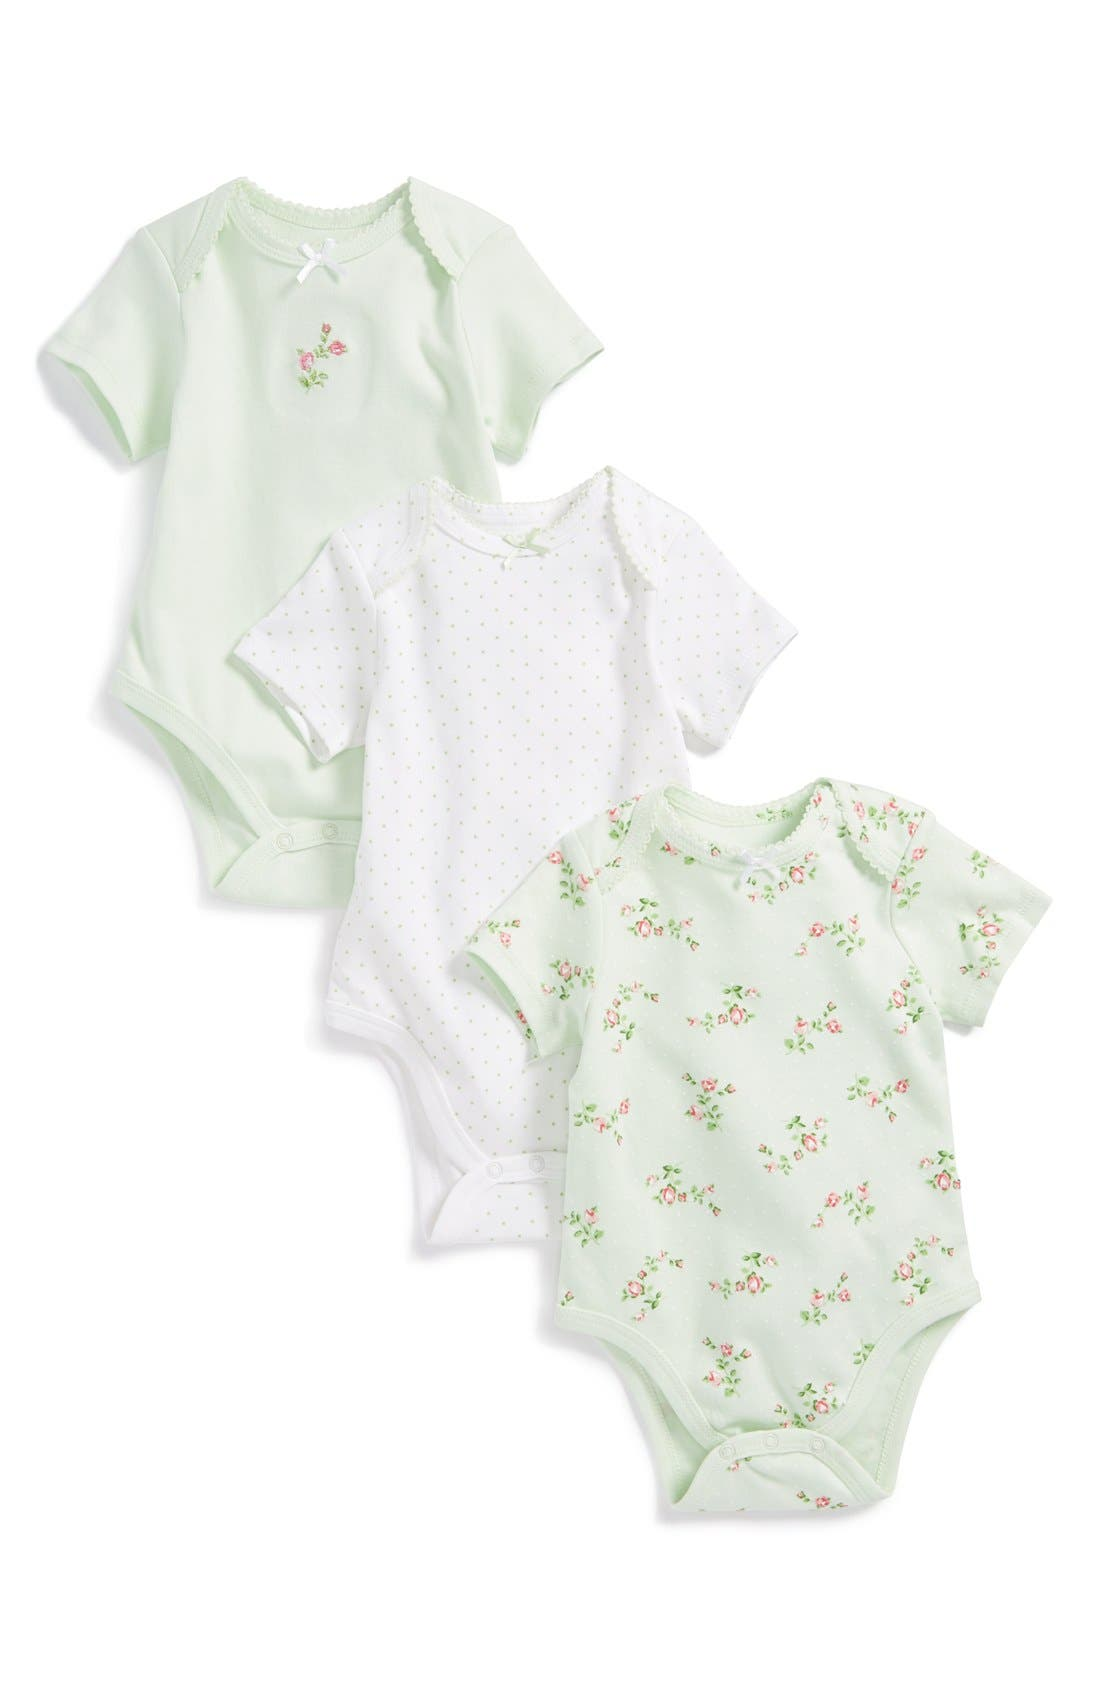 Main Image - Little Me 'Rose Spray' Bodysuits (Set of 3) (Baby Girls)